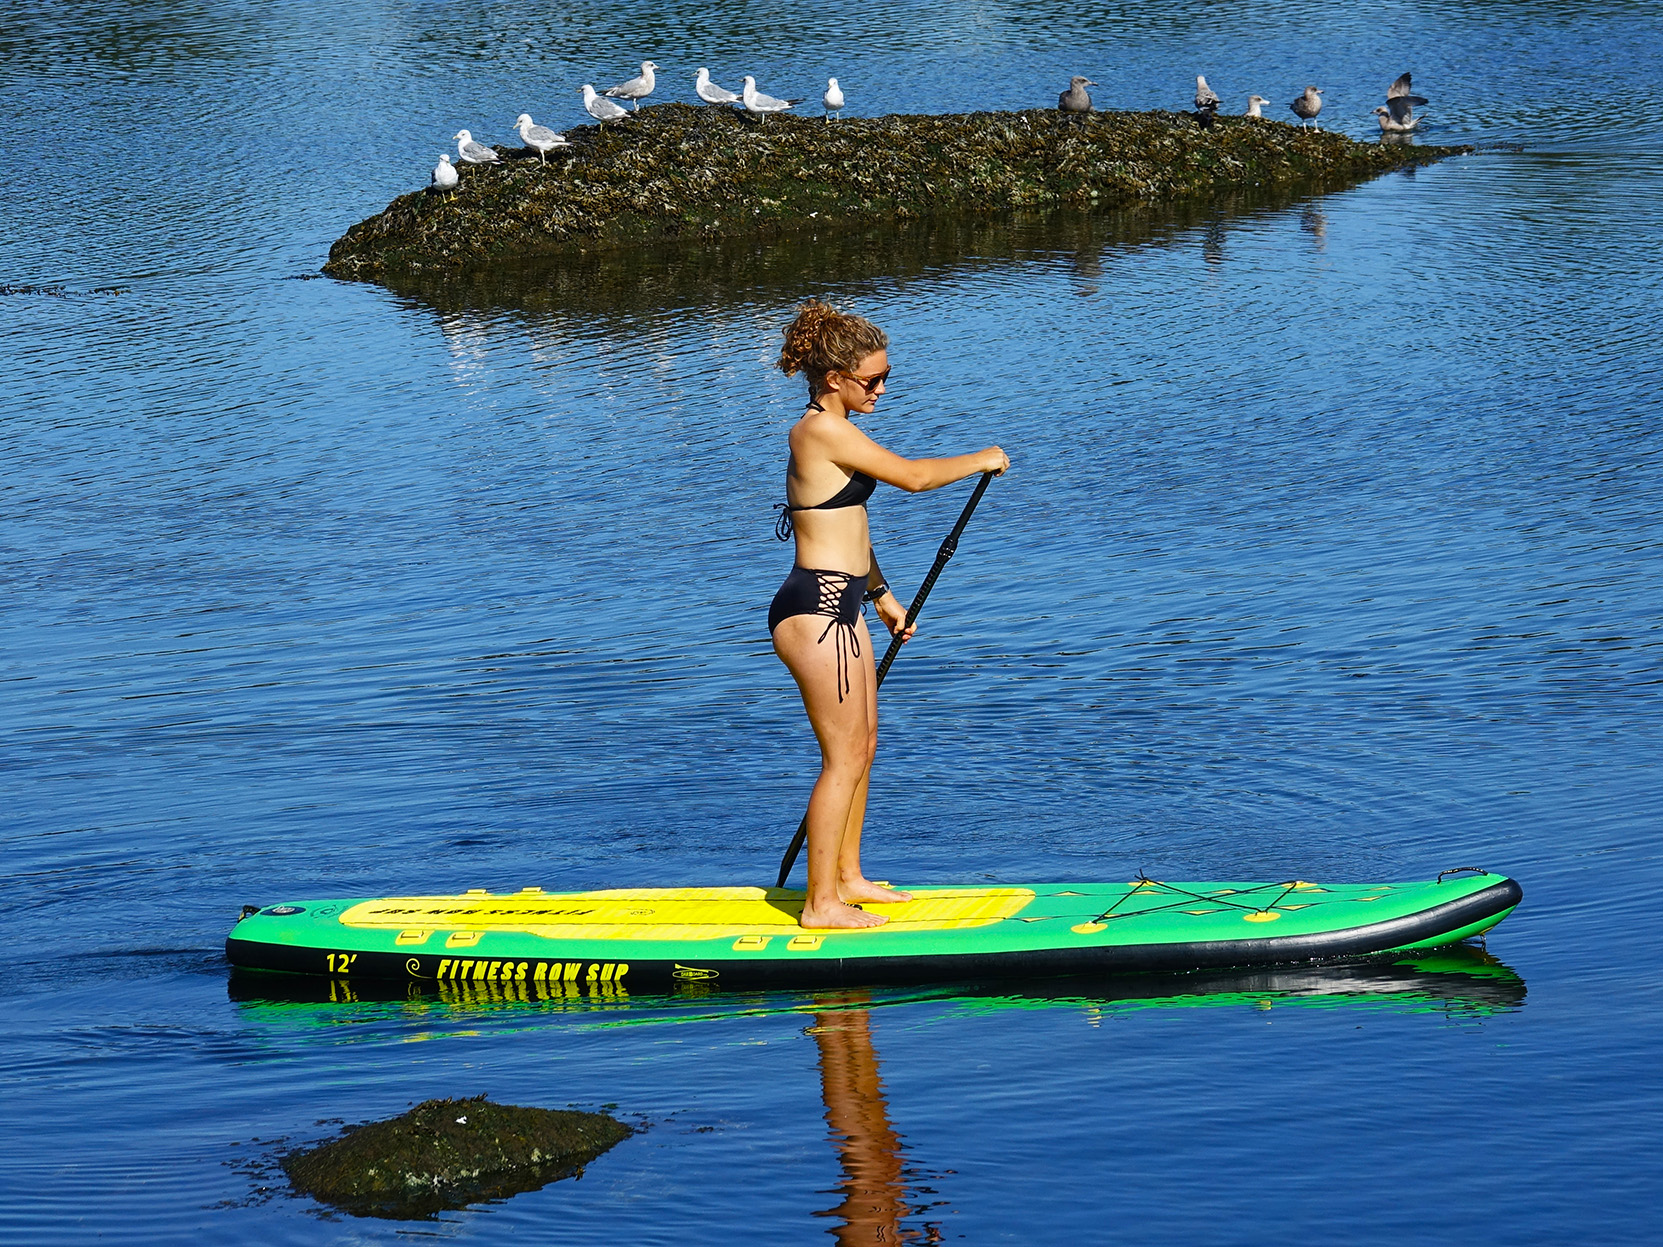 oar-board-stand-up-paddle-board-rower-whitehall-rowing-and-sail-DSC09687-Kess-Blog